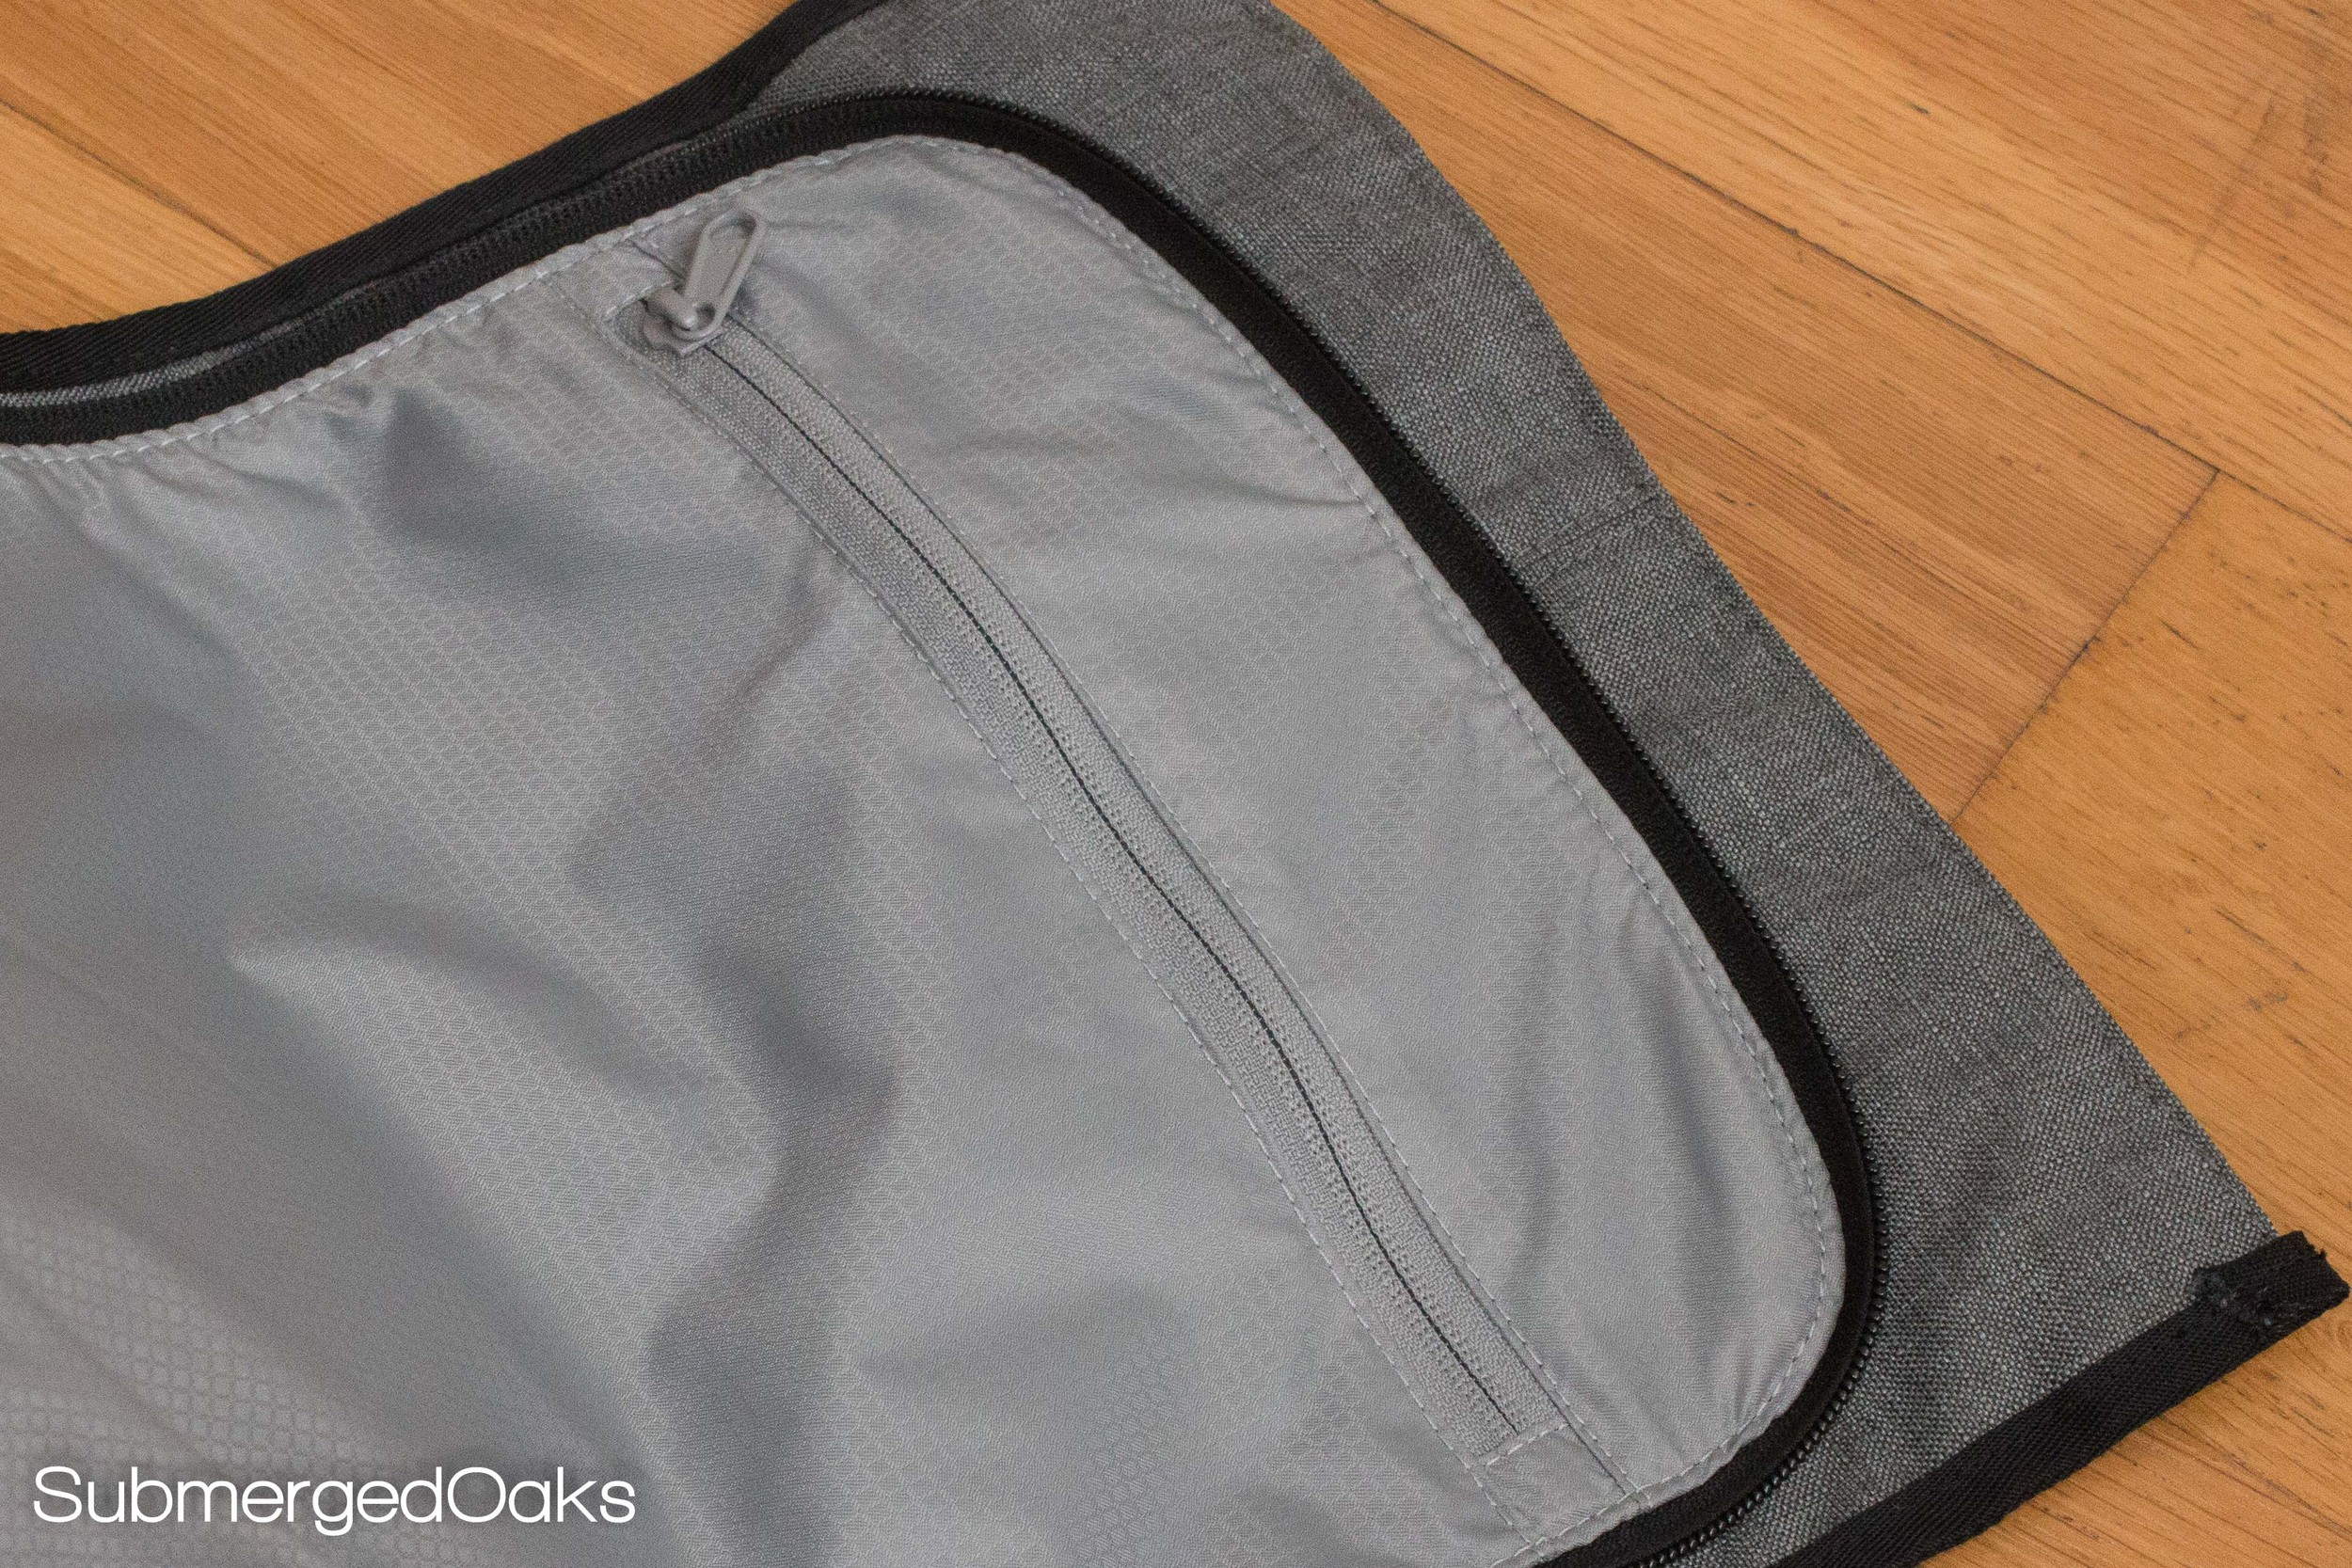 an additional pocket on the opening flap is included for separation of dirty clothes, toiletries, etc.